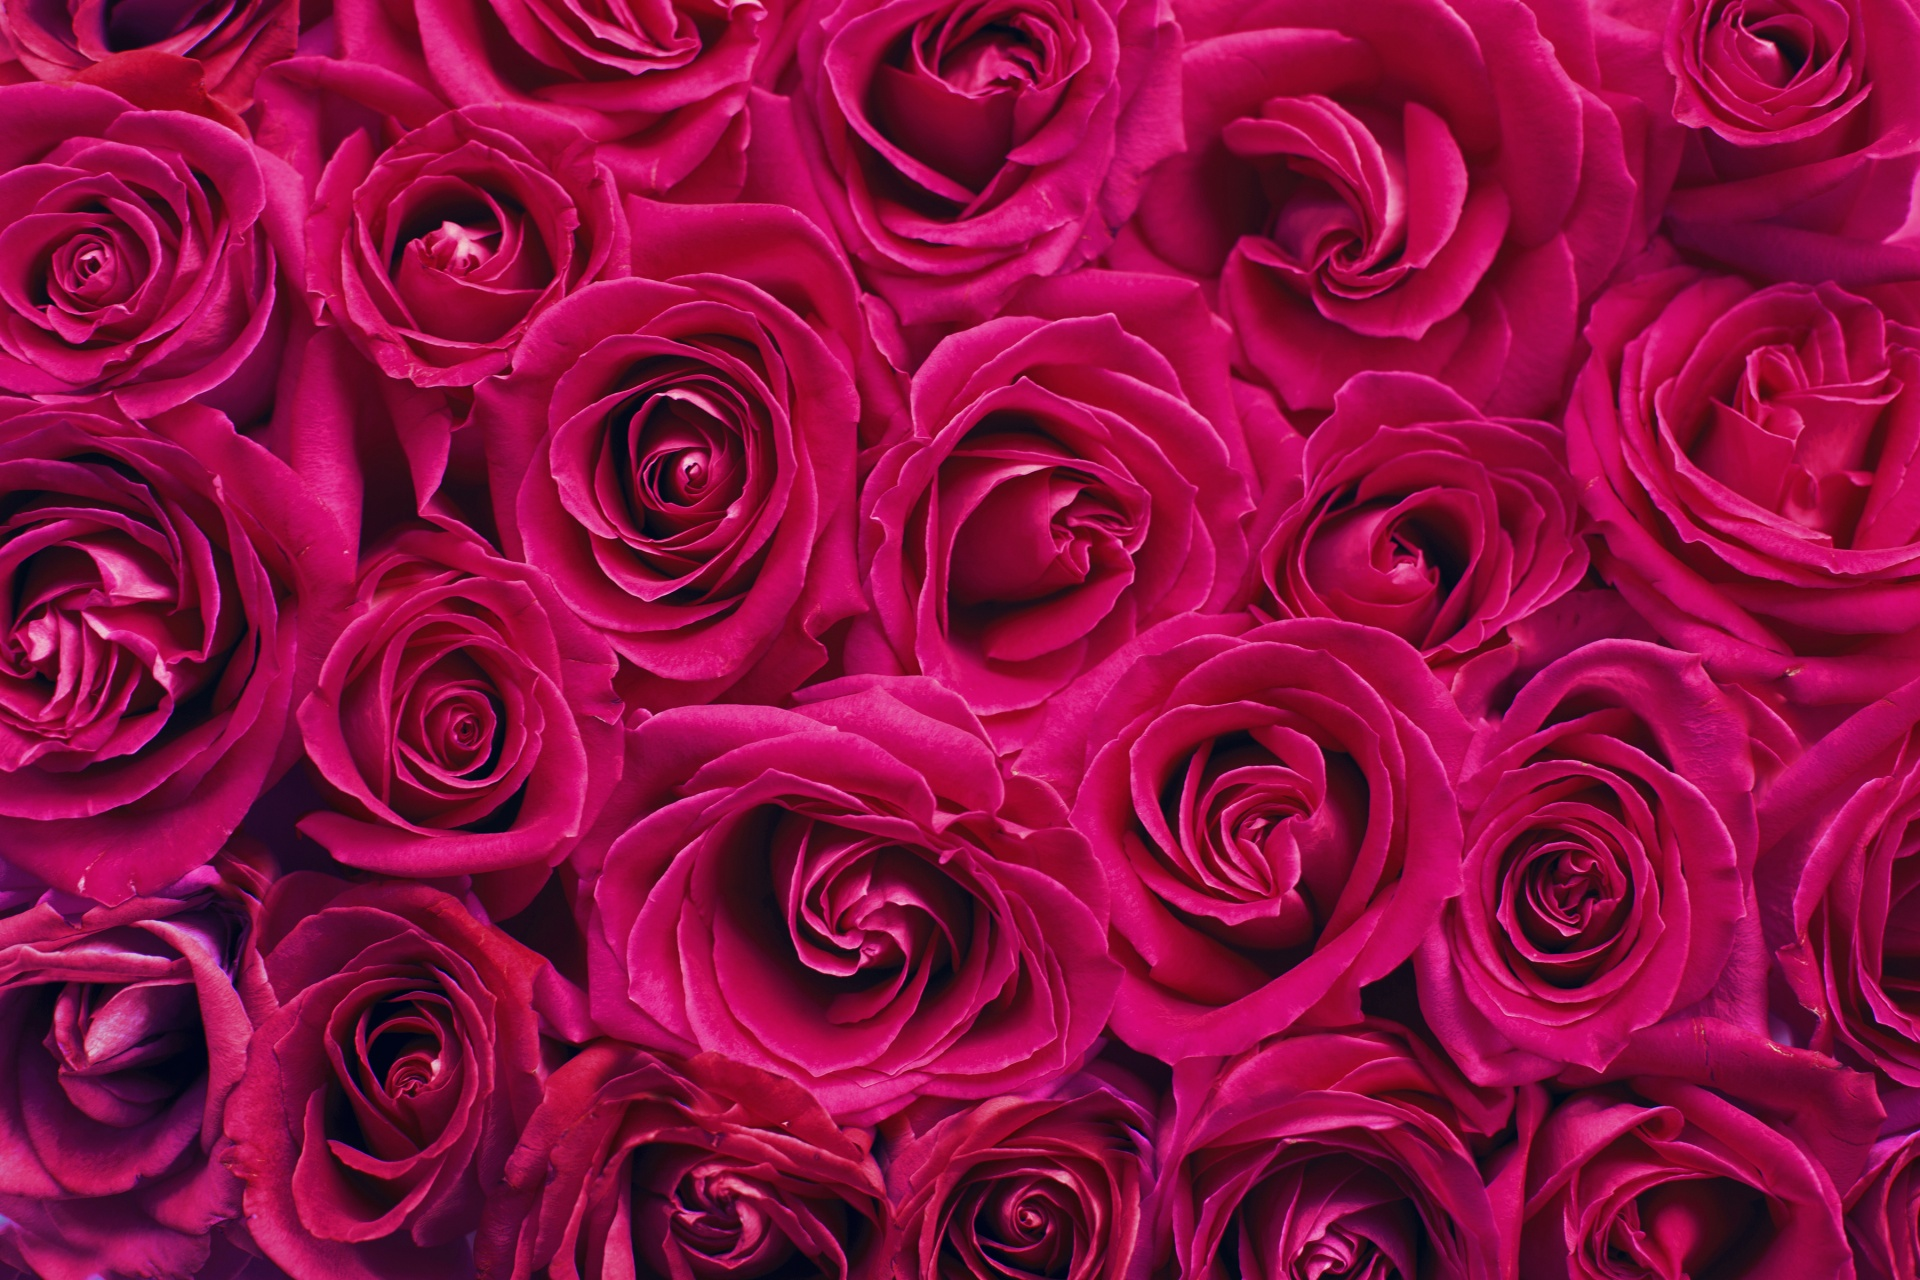 Wallpaper Full Color Hd Red Roses Background Free Stock Photo Public Domain Pictures